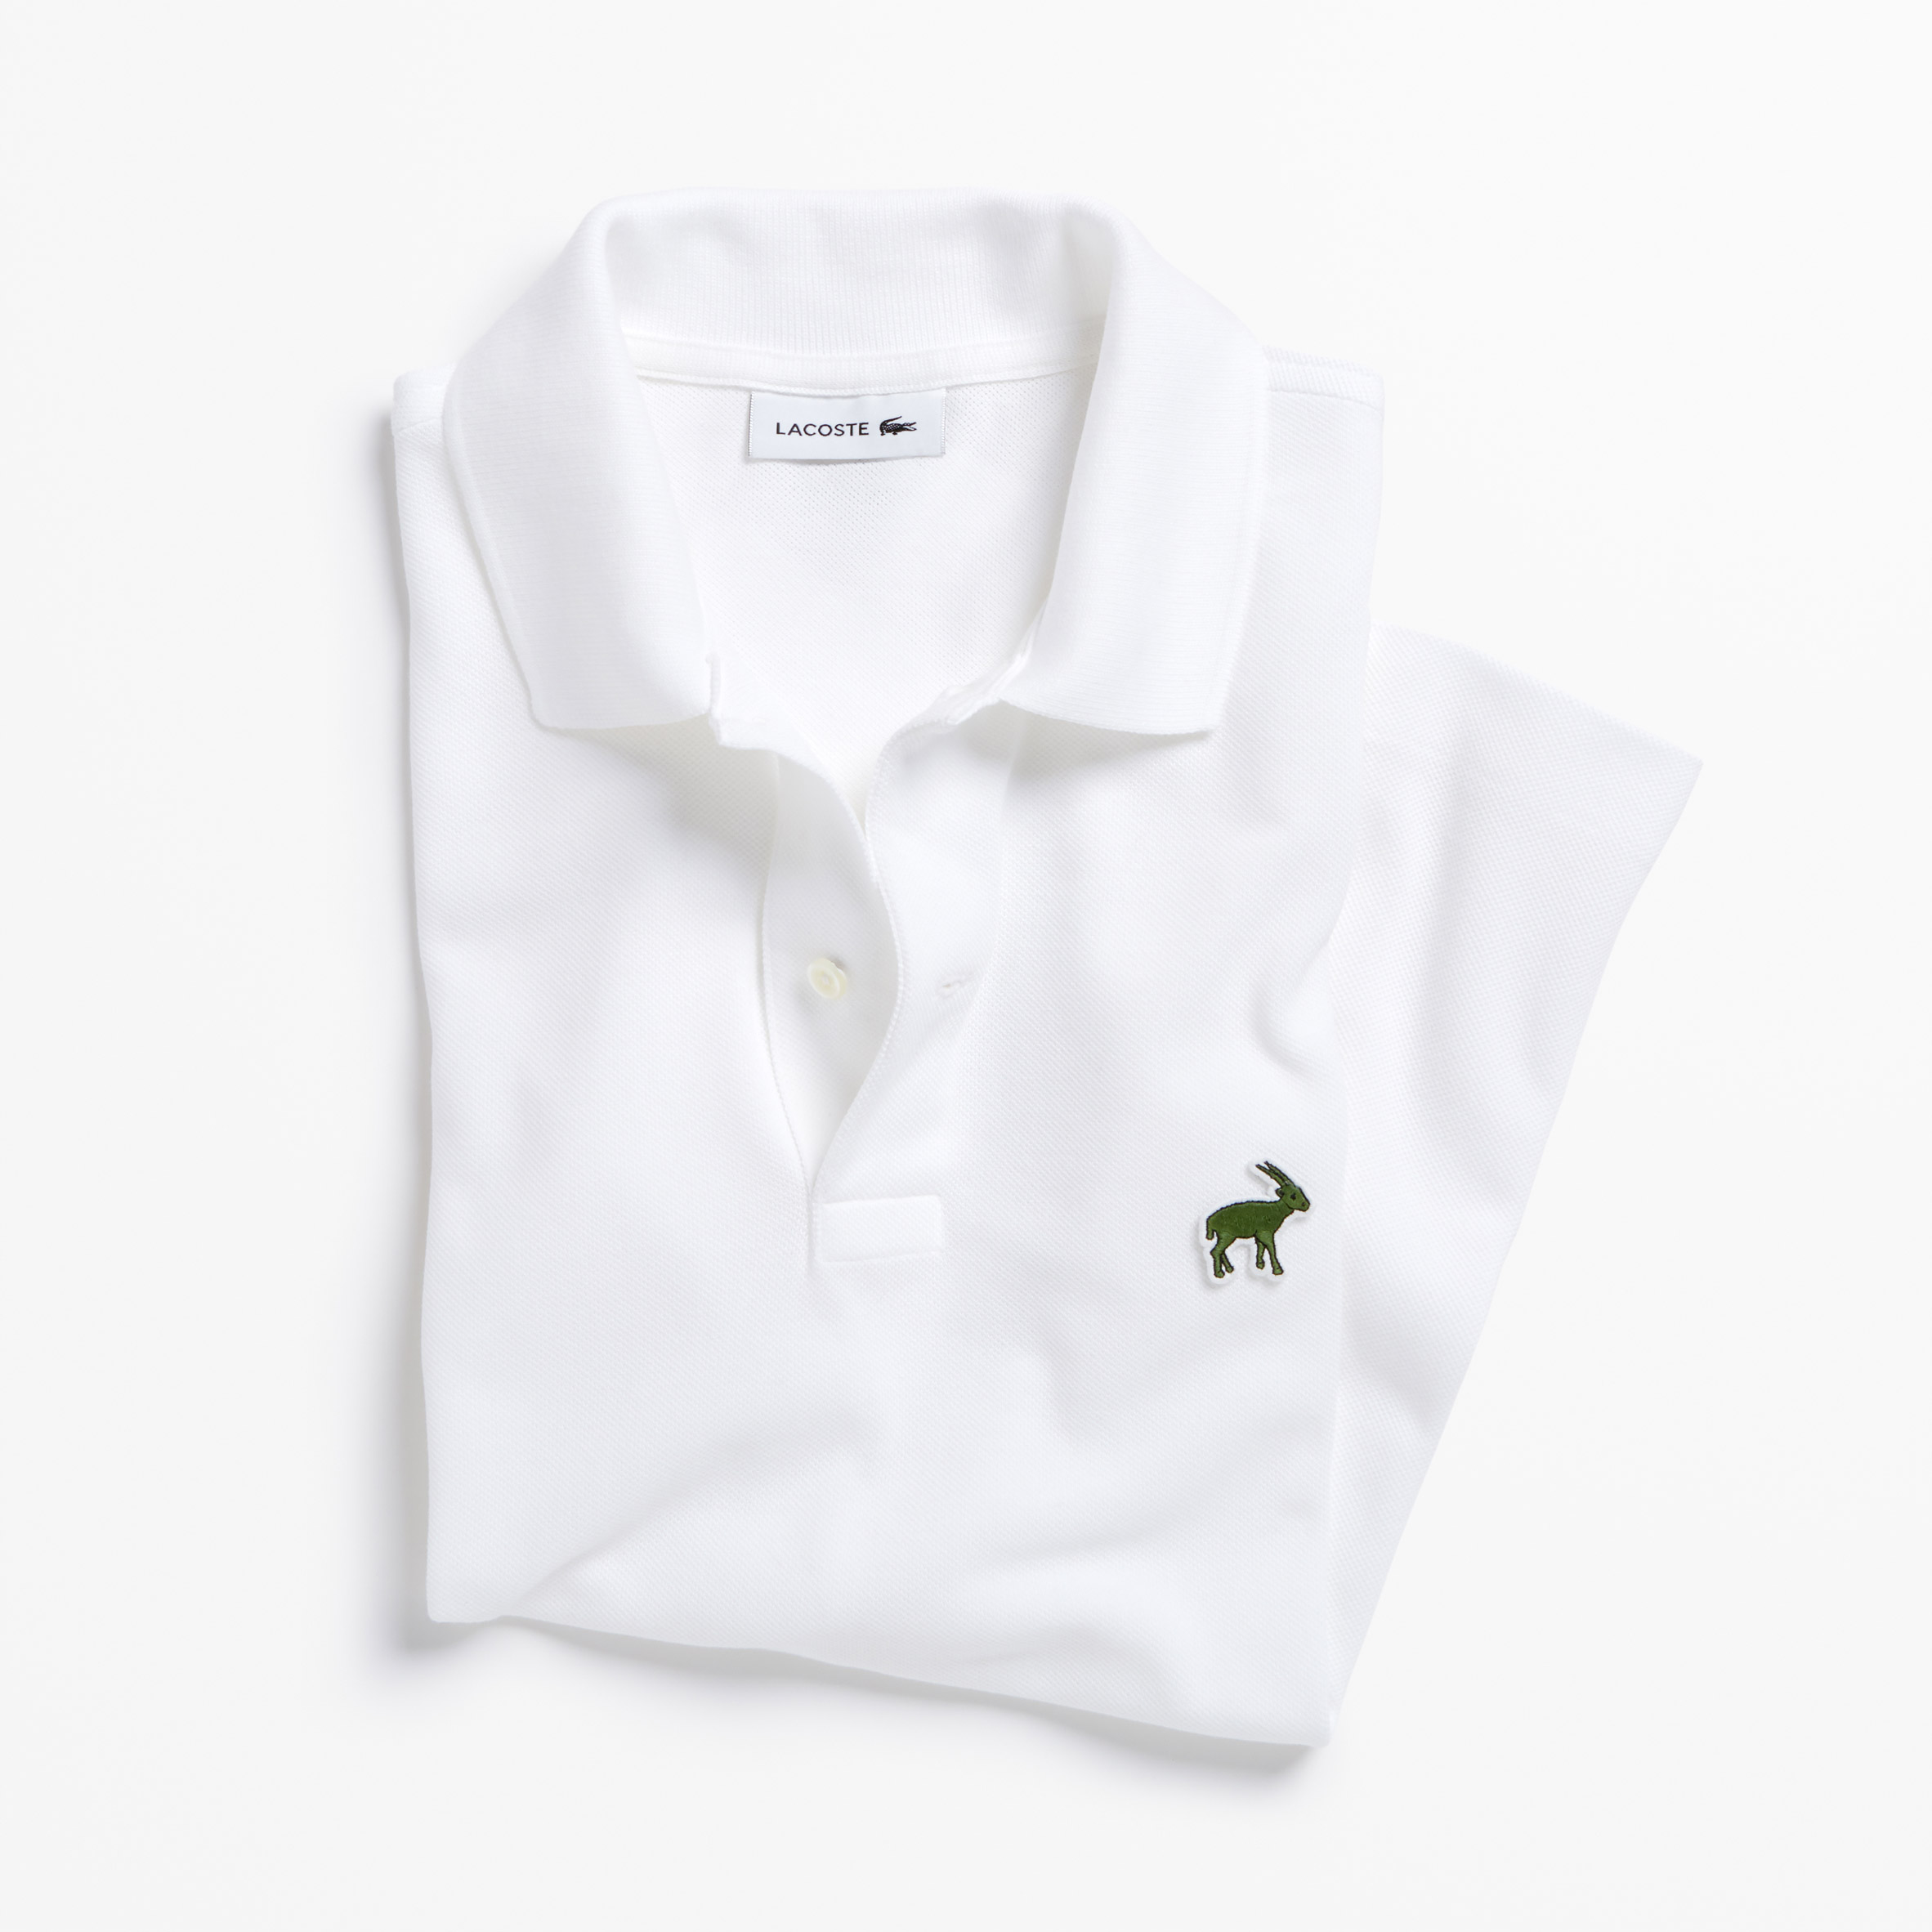 0c0116503a ... Lacoste's crocodile logo is replaced by endangered species for limited  edition polo shirts